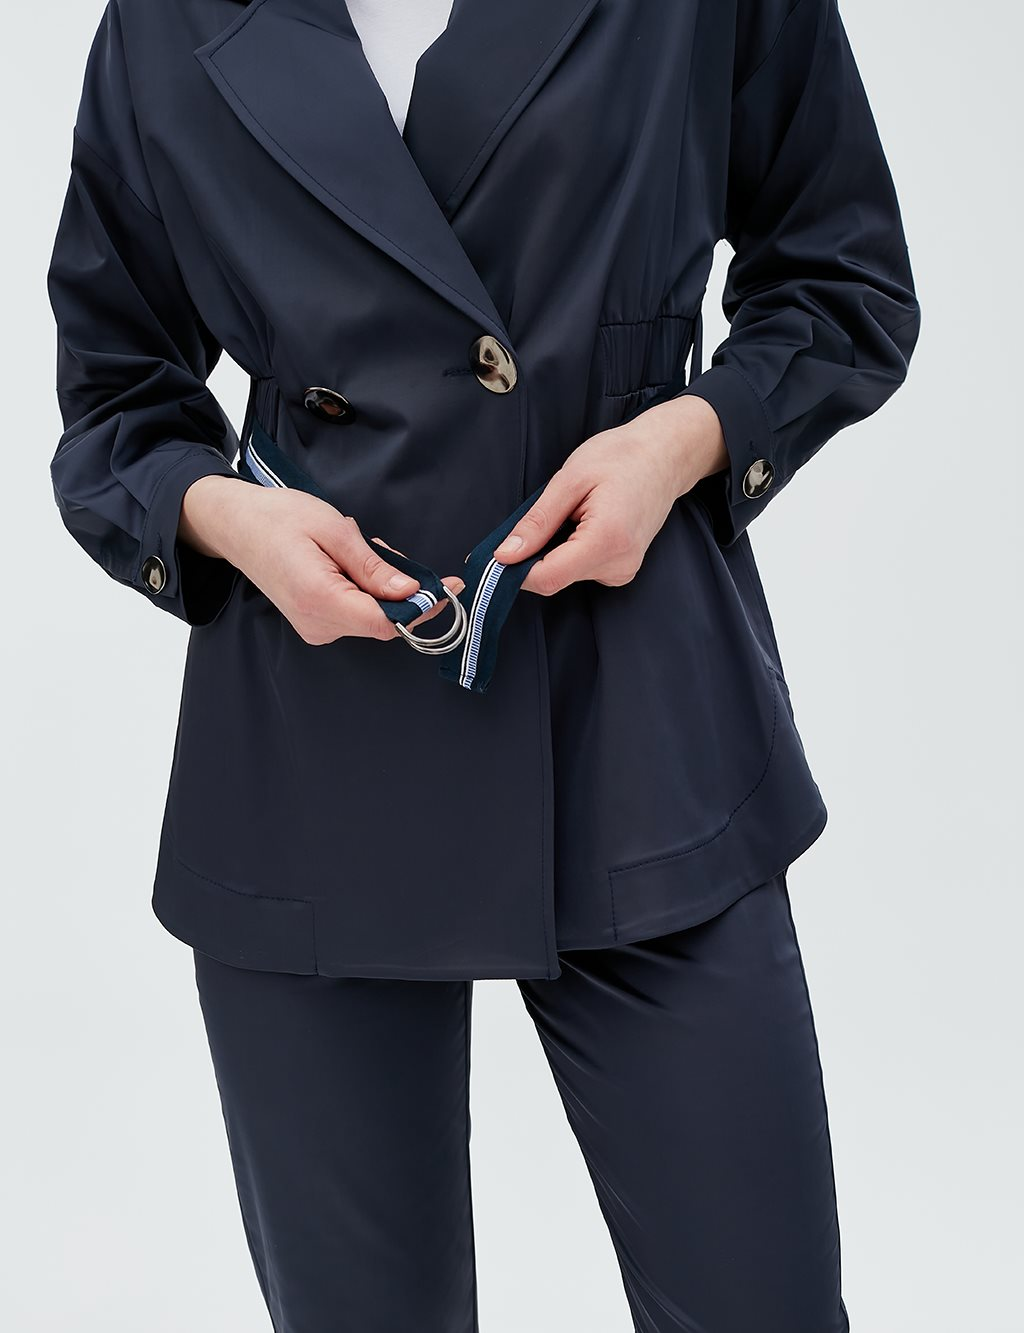 Button Detailed Jacket With Belt B20 13018 Navy